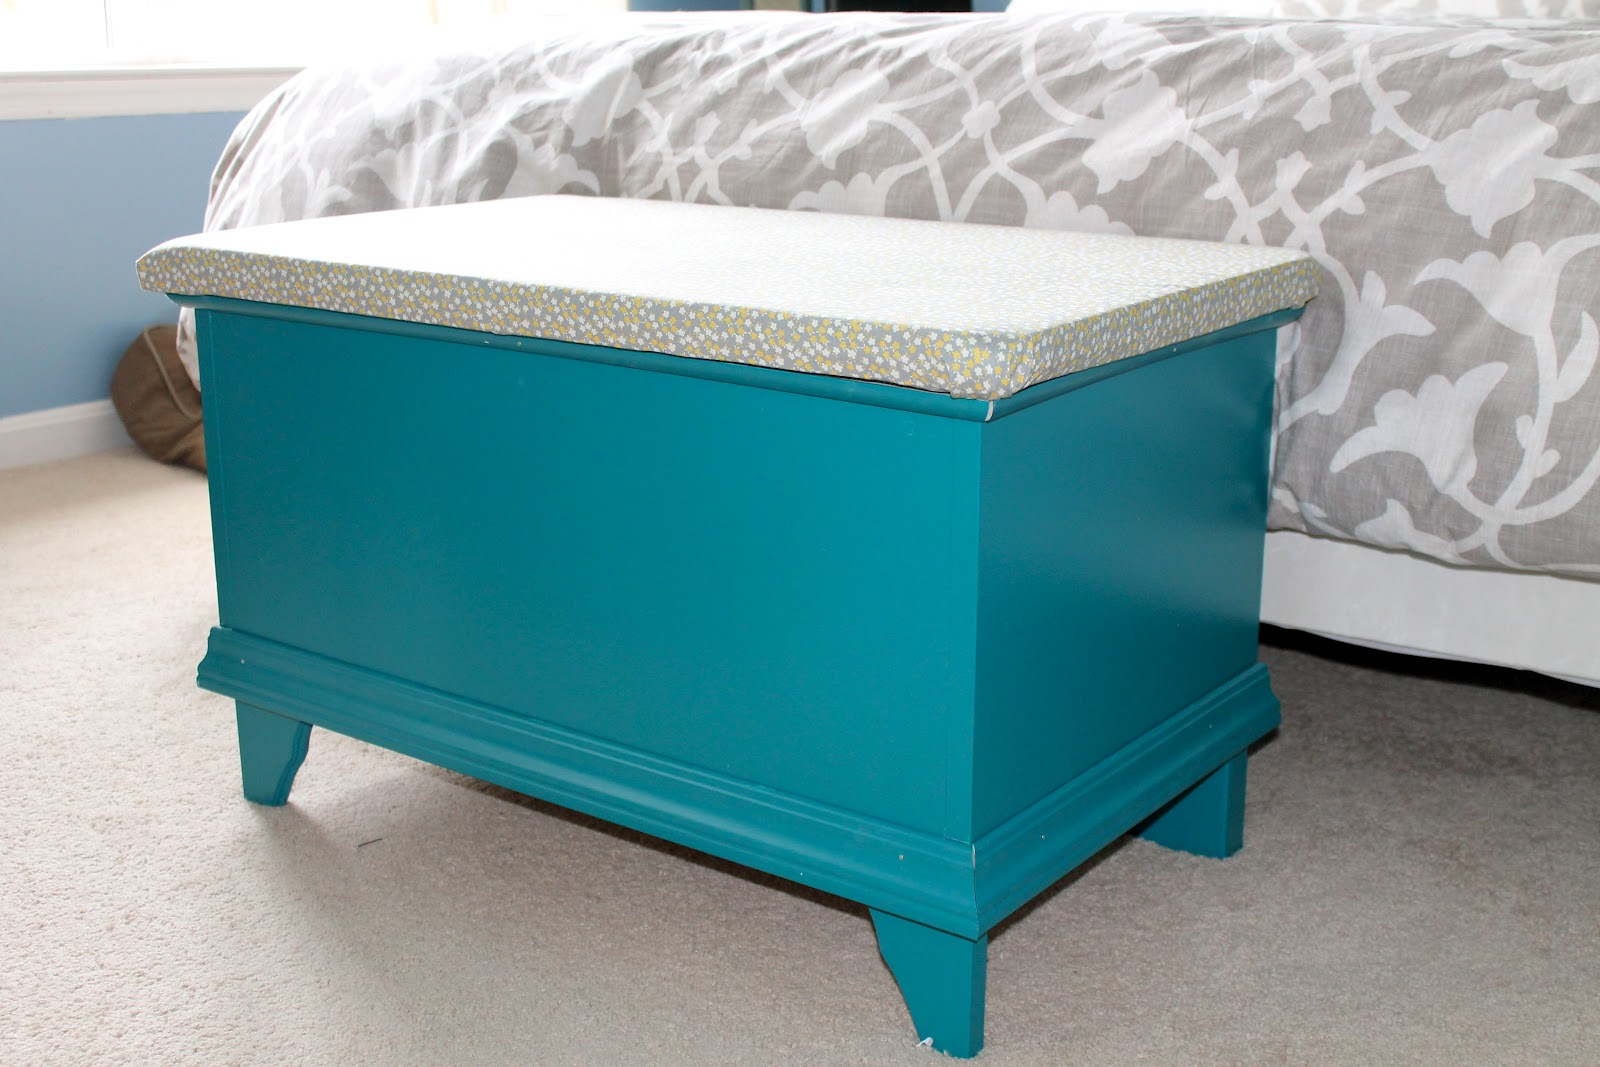 Ikea storage bench hack 28 images recycled old expedit for Ikea shelf bench hack